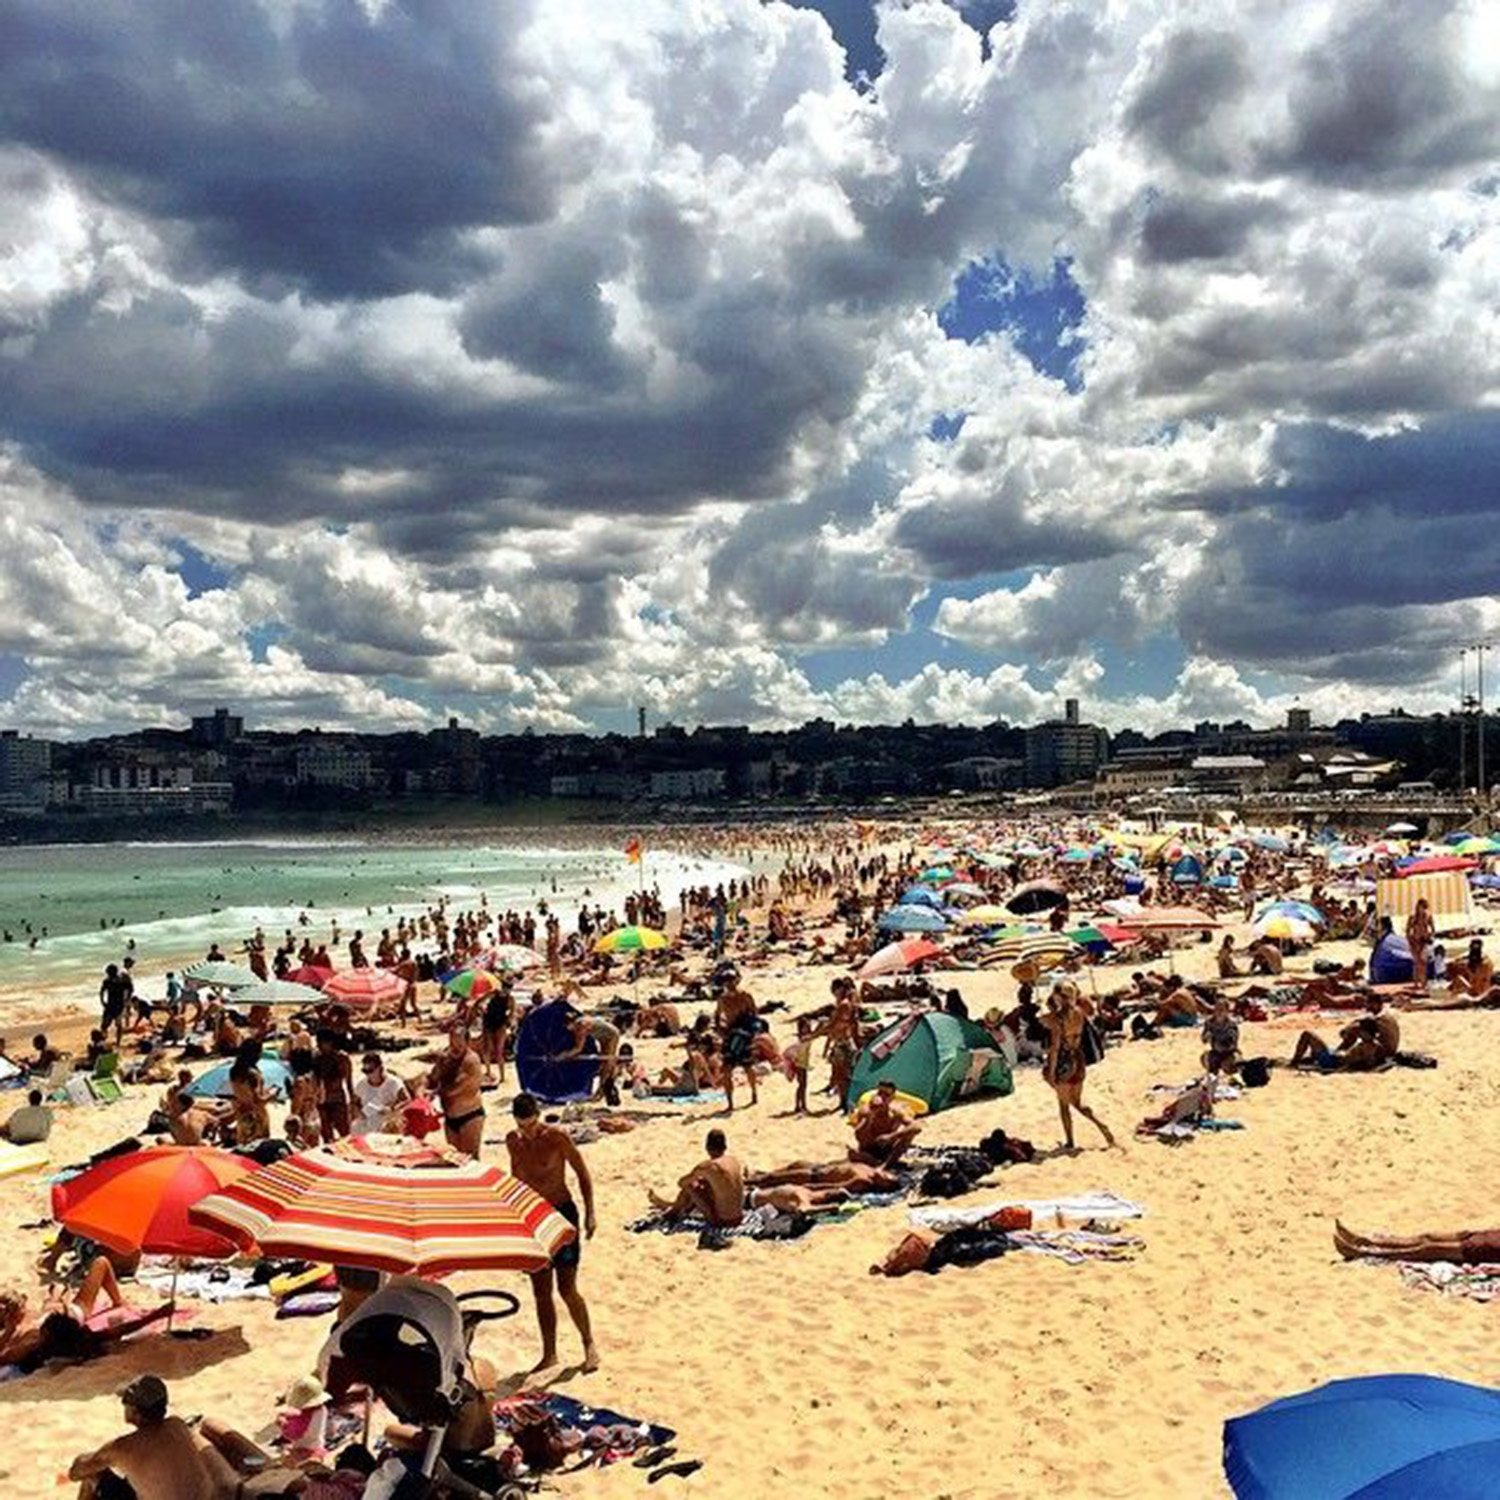 North Bondi filled with swimmers, sunbathers and beachgoers enjoying the sunshine